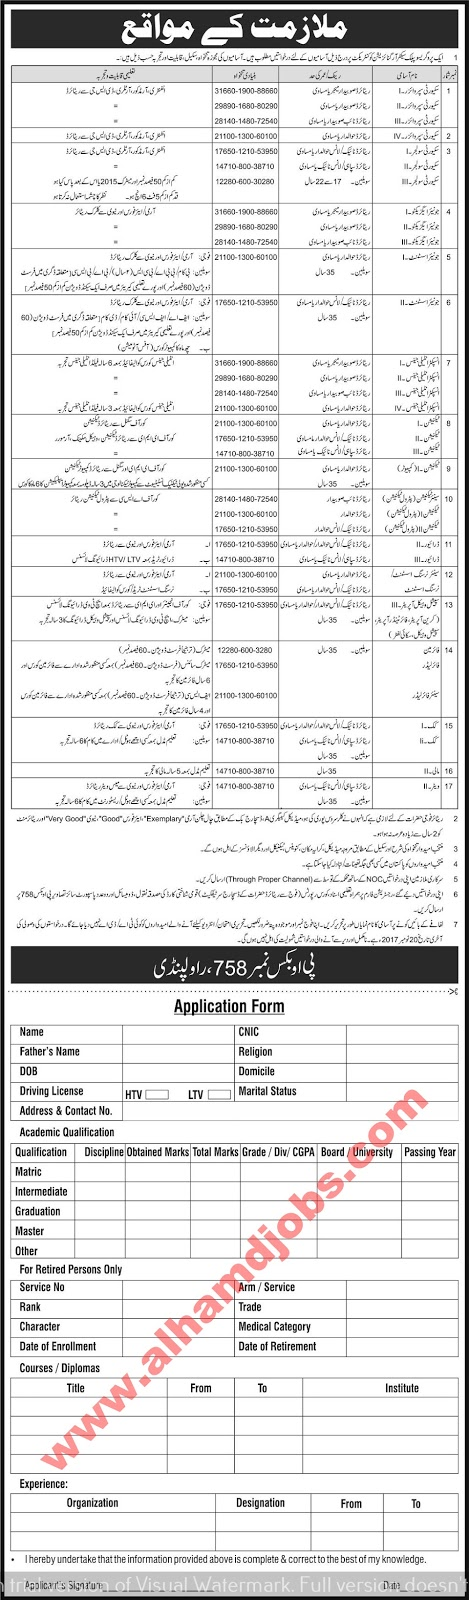 Atomic Energy Spd Security Soldier Islamabad Jobs Sunday Jang